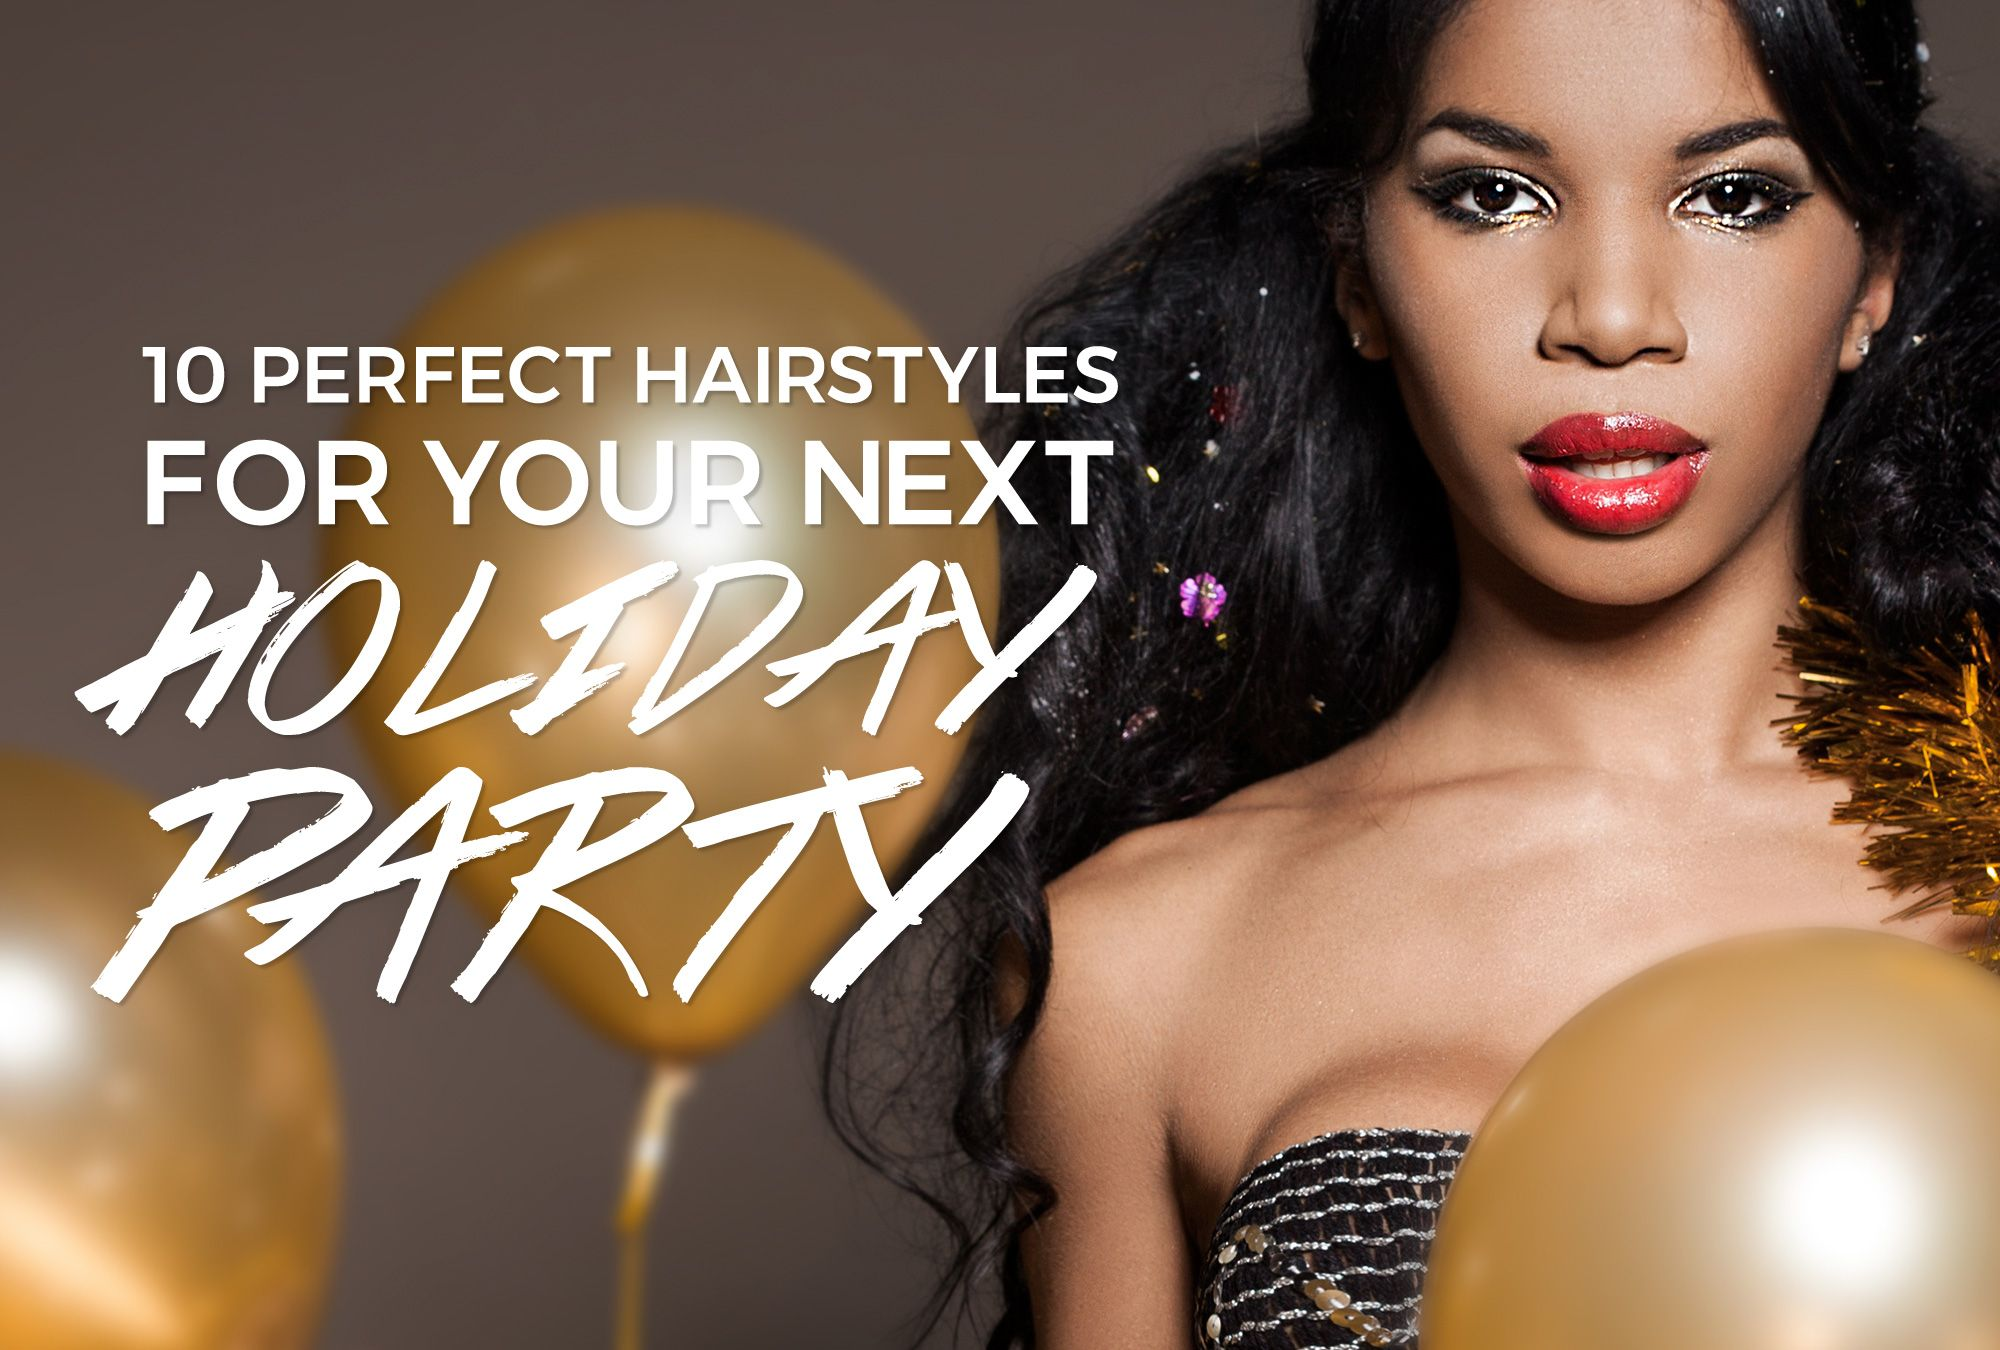 10 Perfect Hairstyles For Your Next Holiday Party